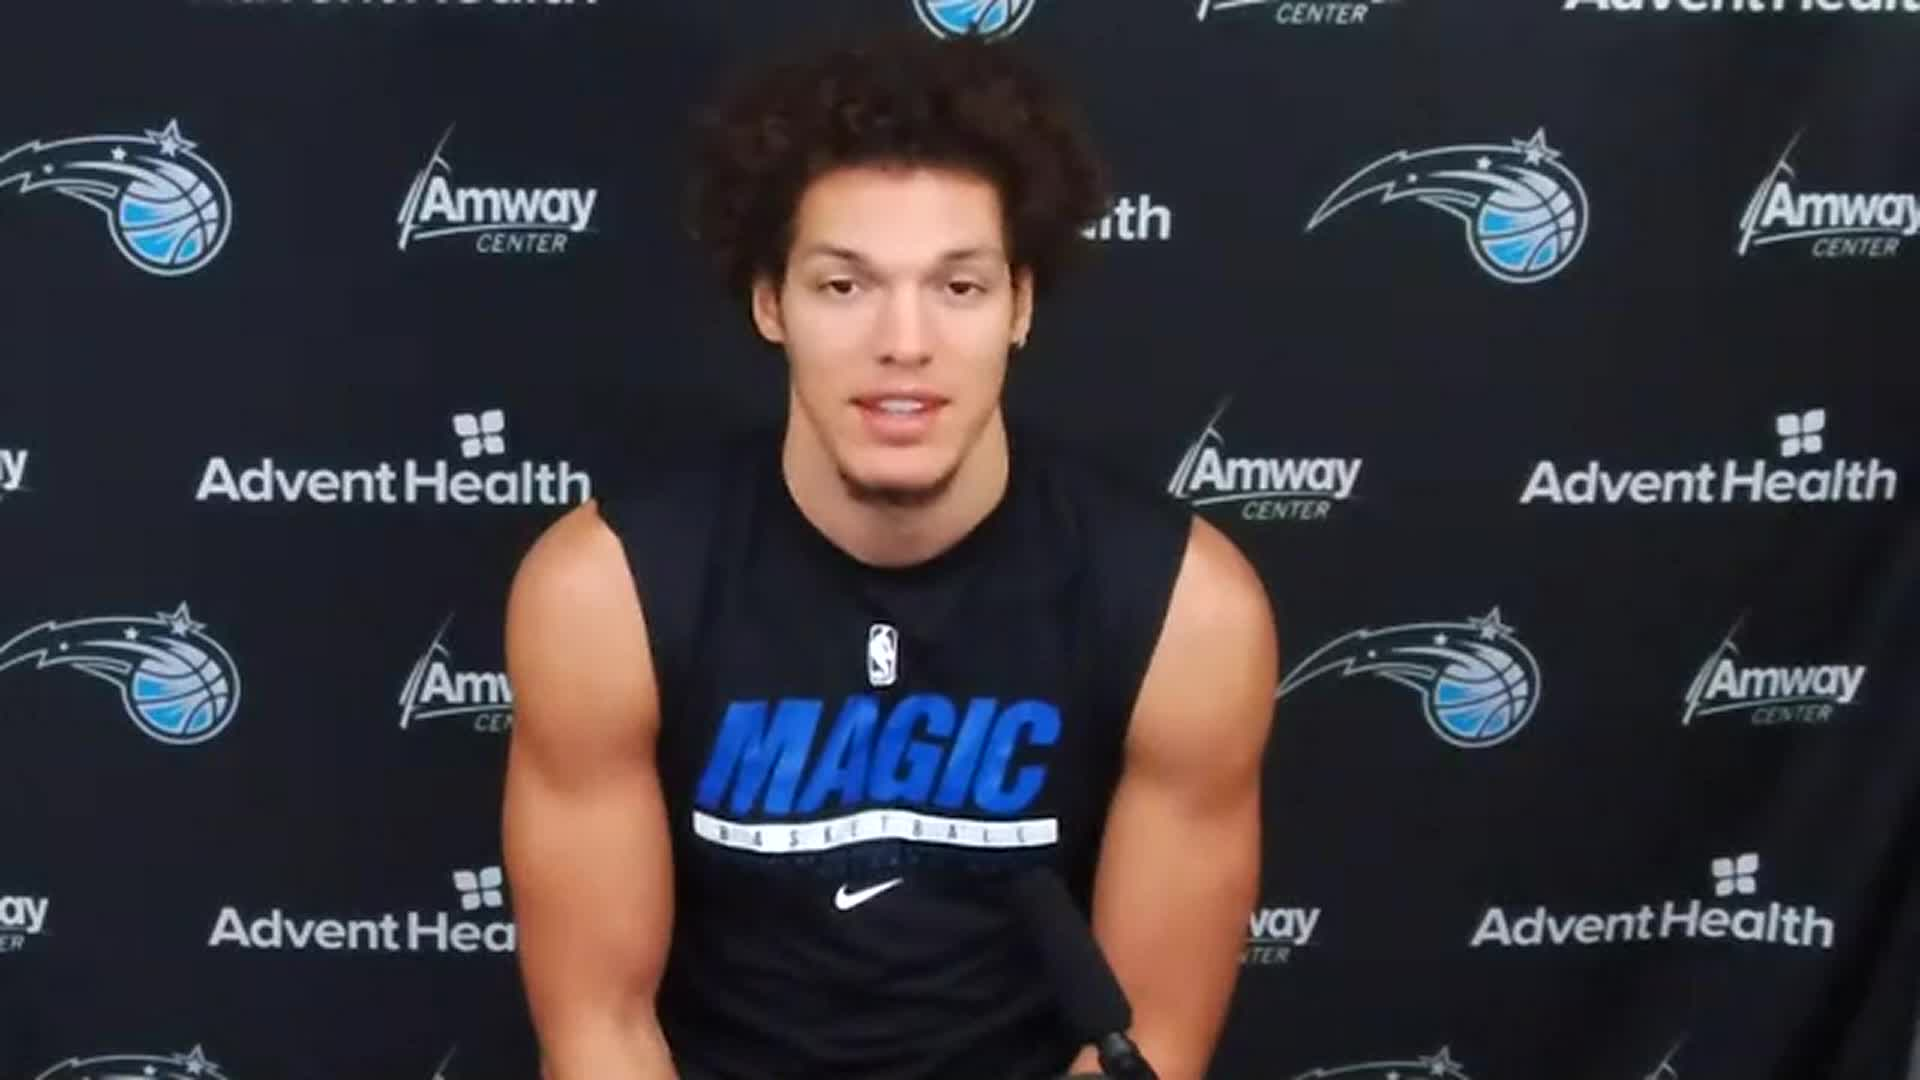 Aaron Gordon on {CodeOrlando} Donation